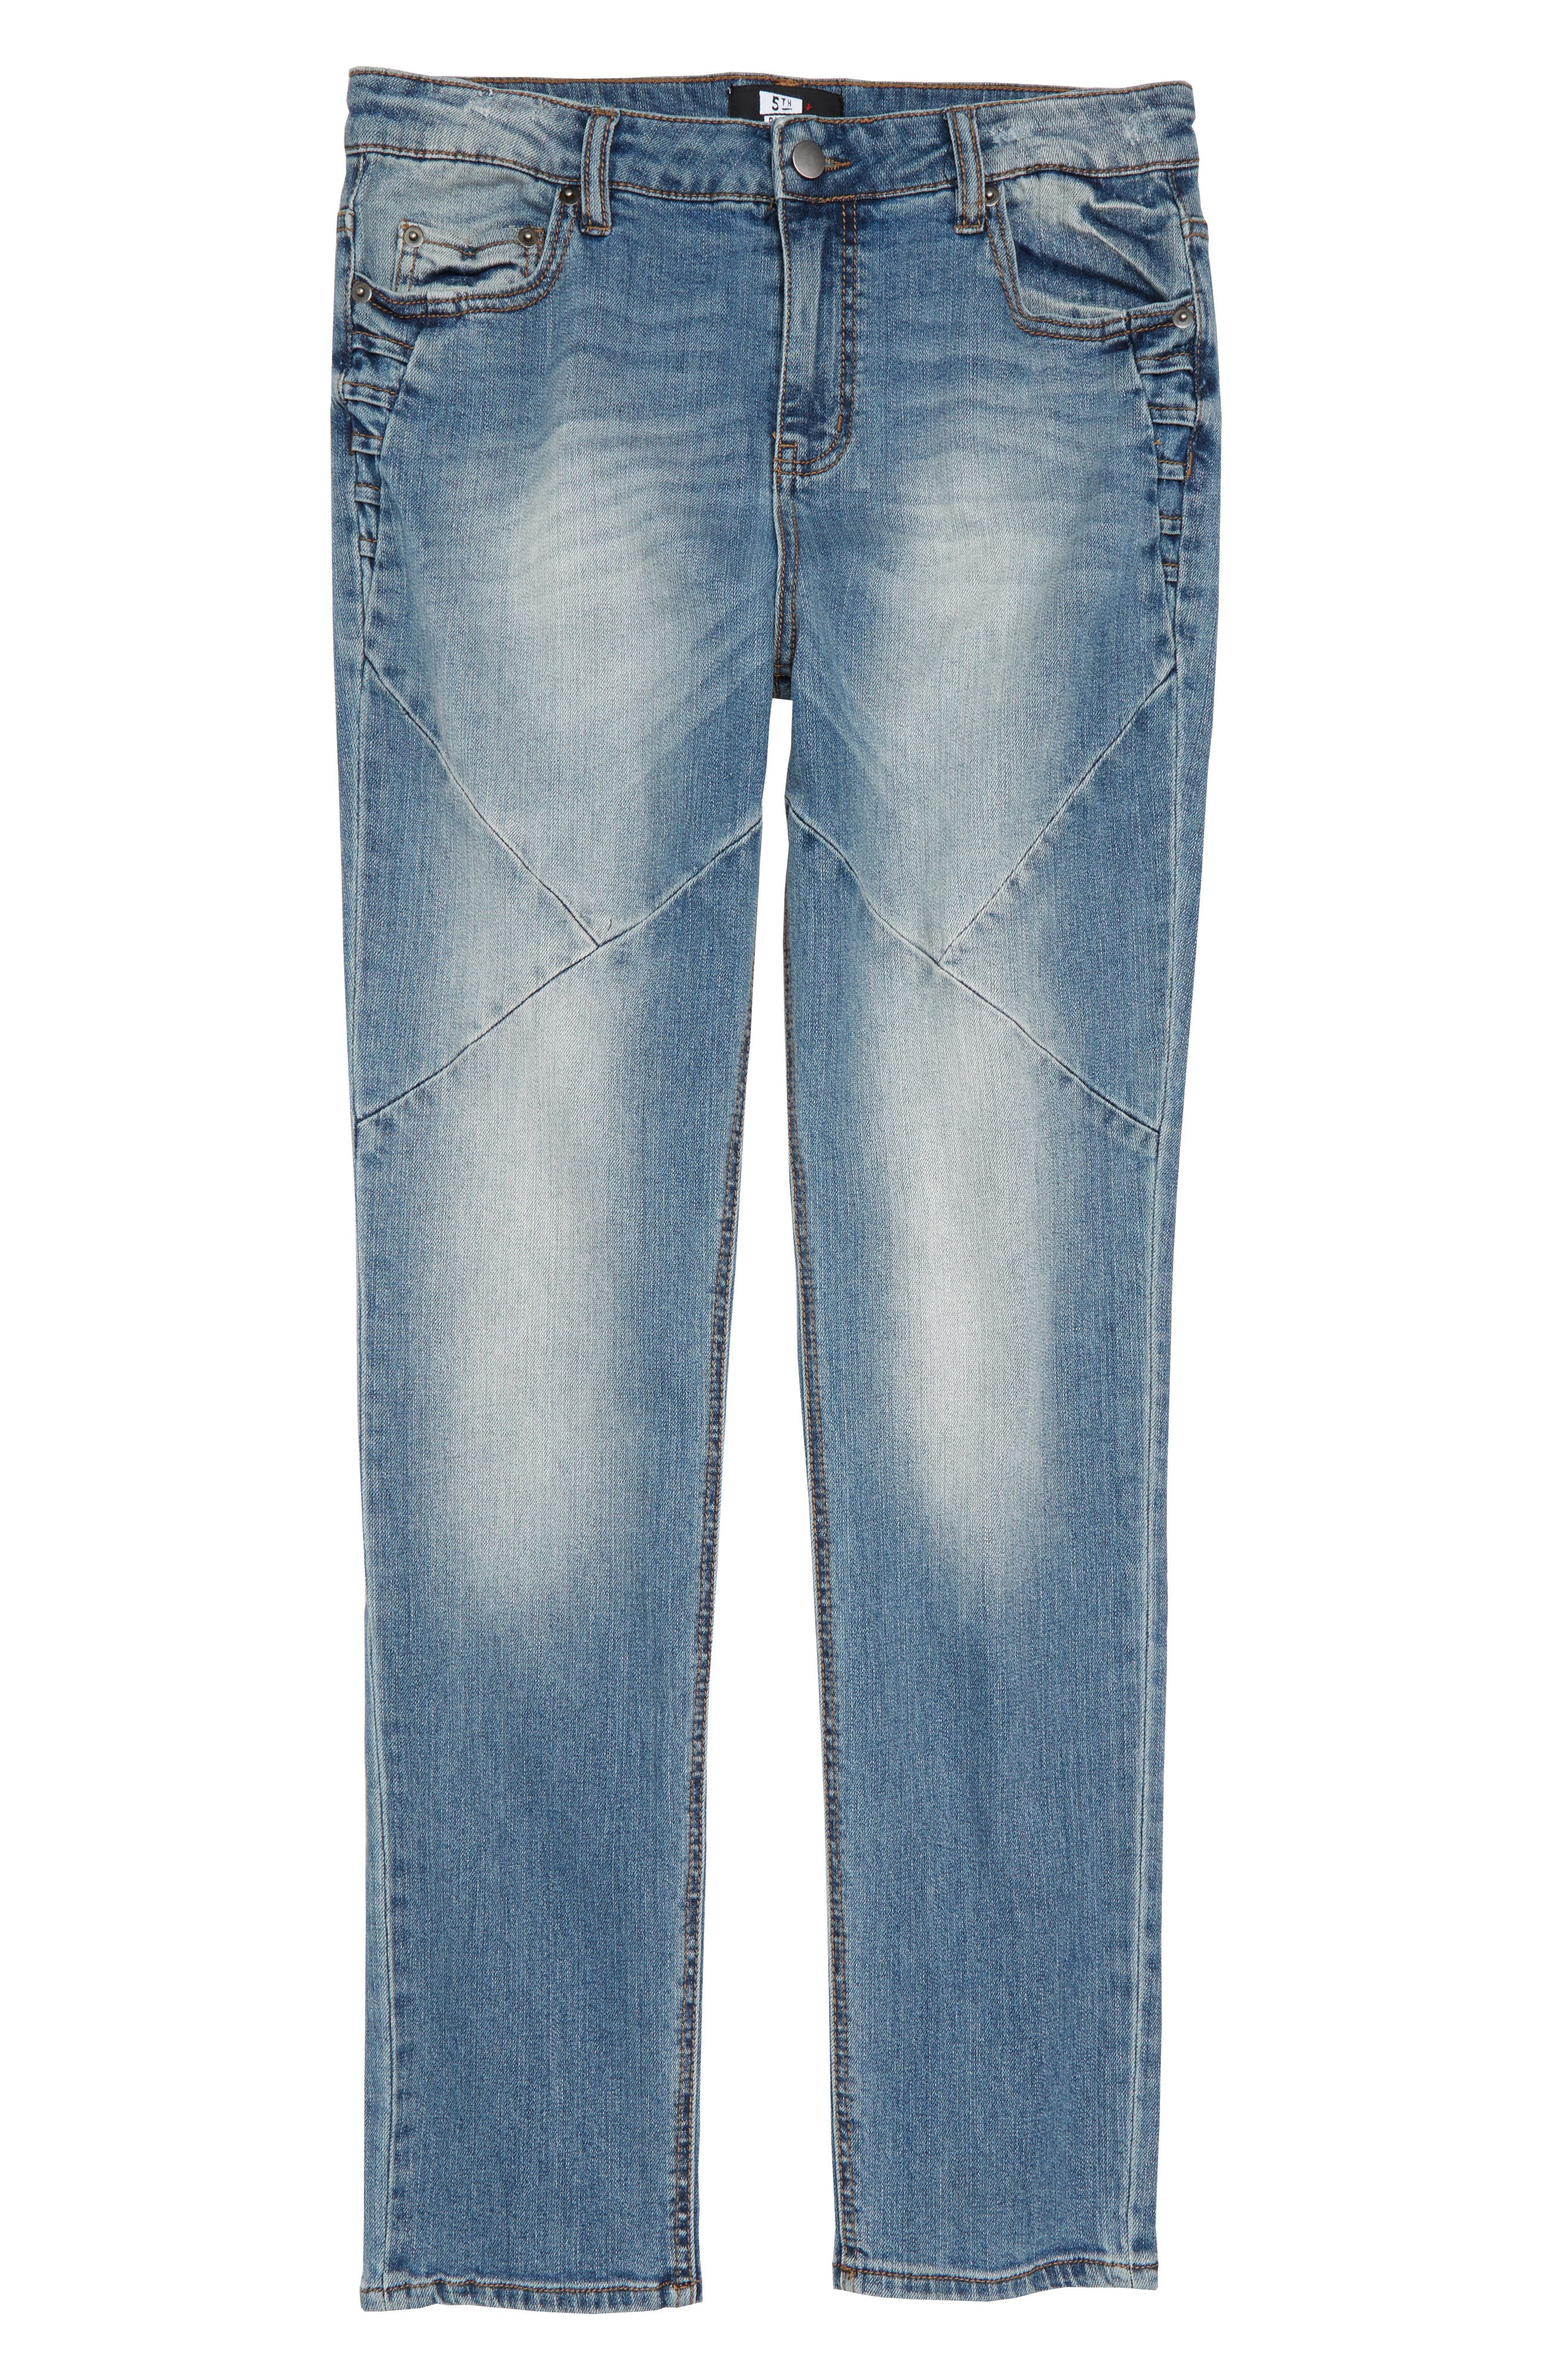 Elwood Pieced Skinny Jeans,                             Main thumbnail 1, color,                             424